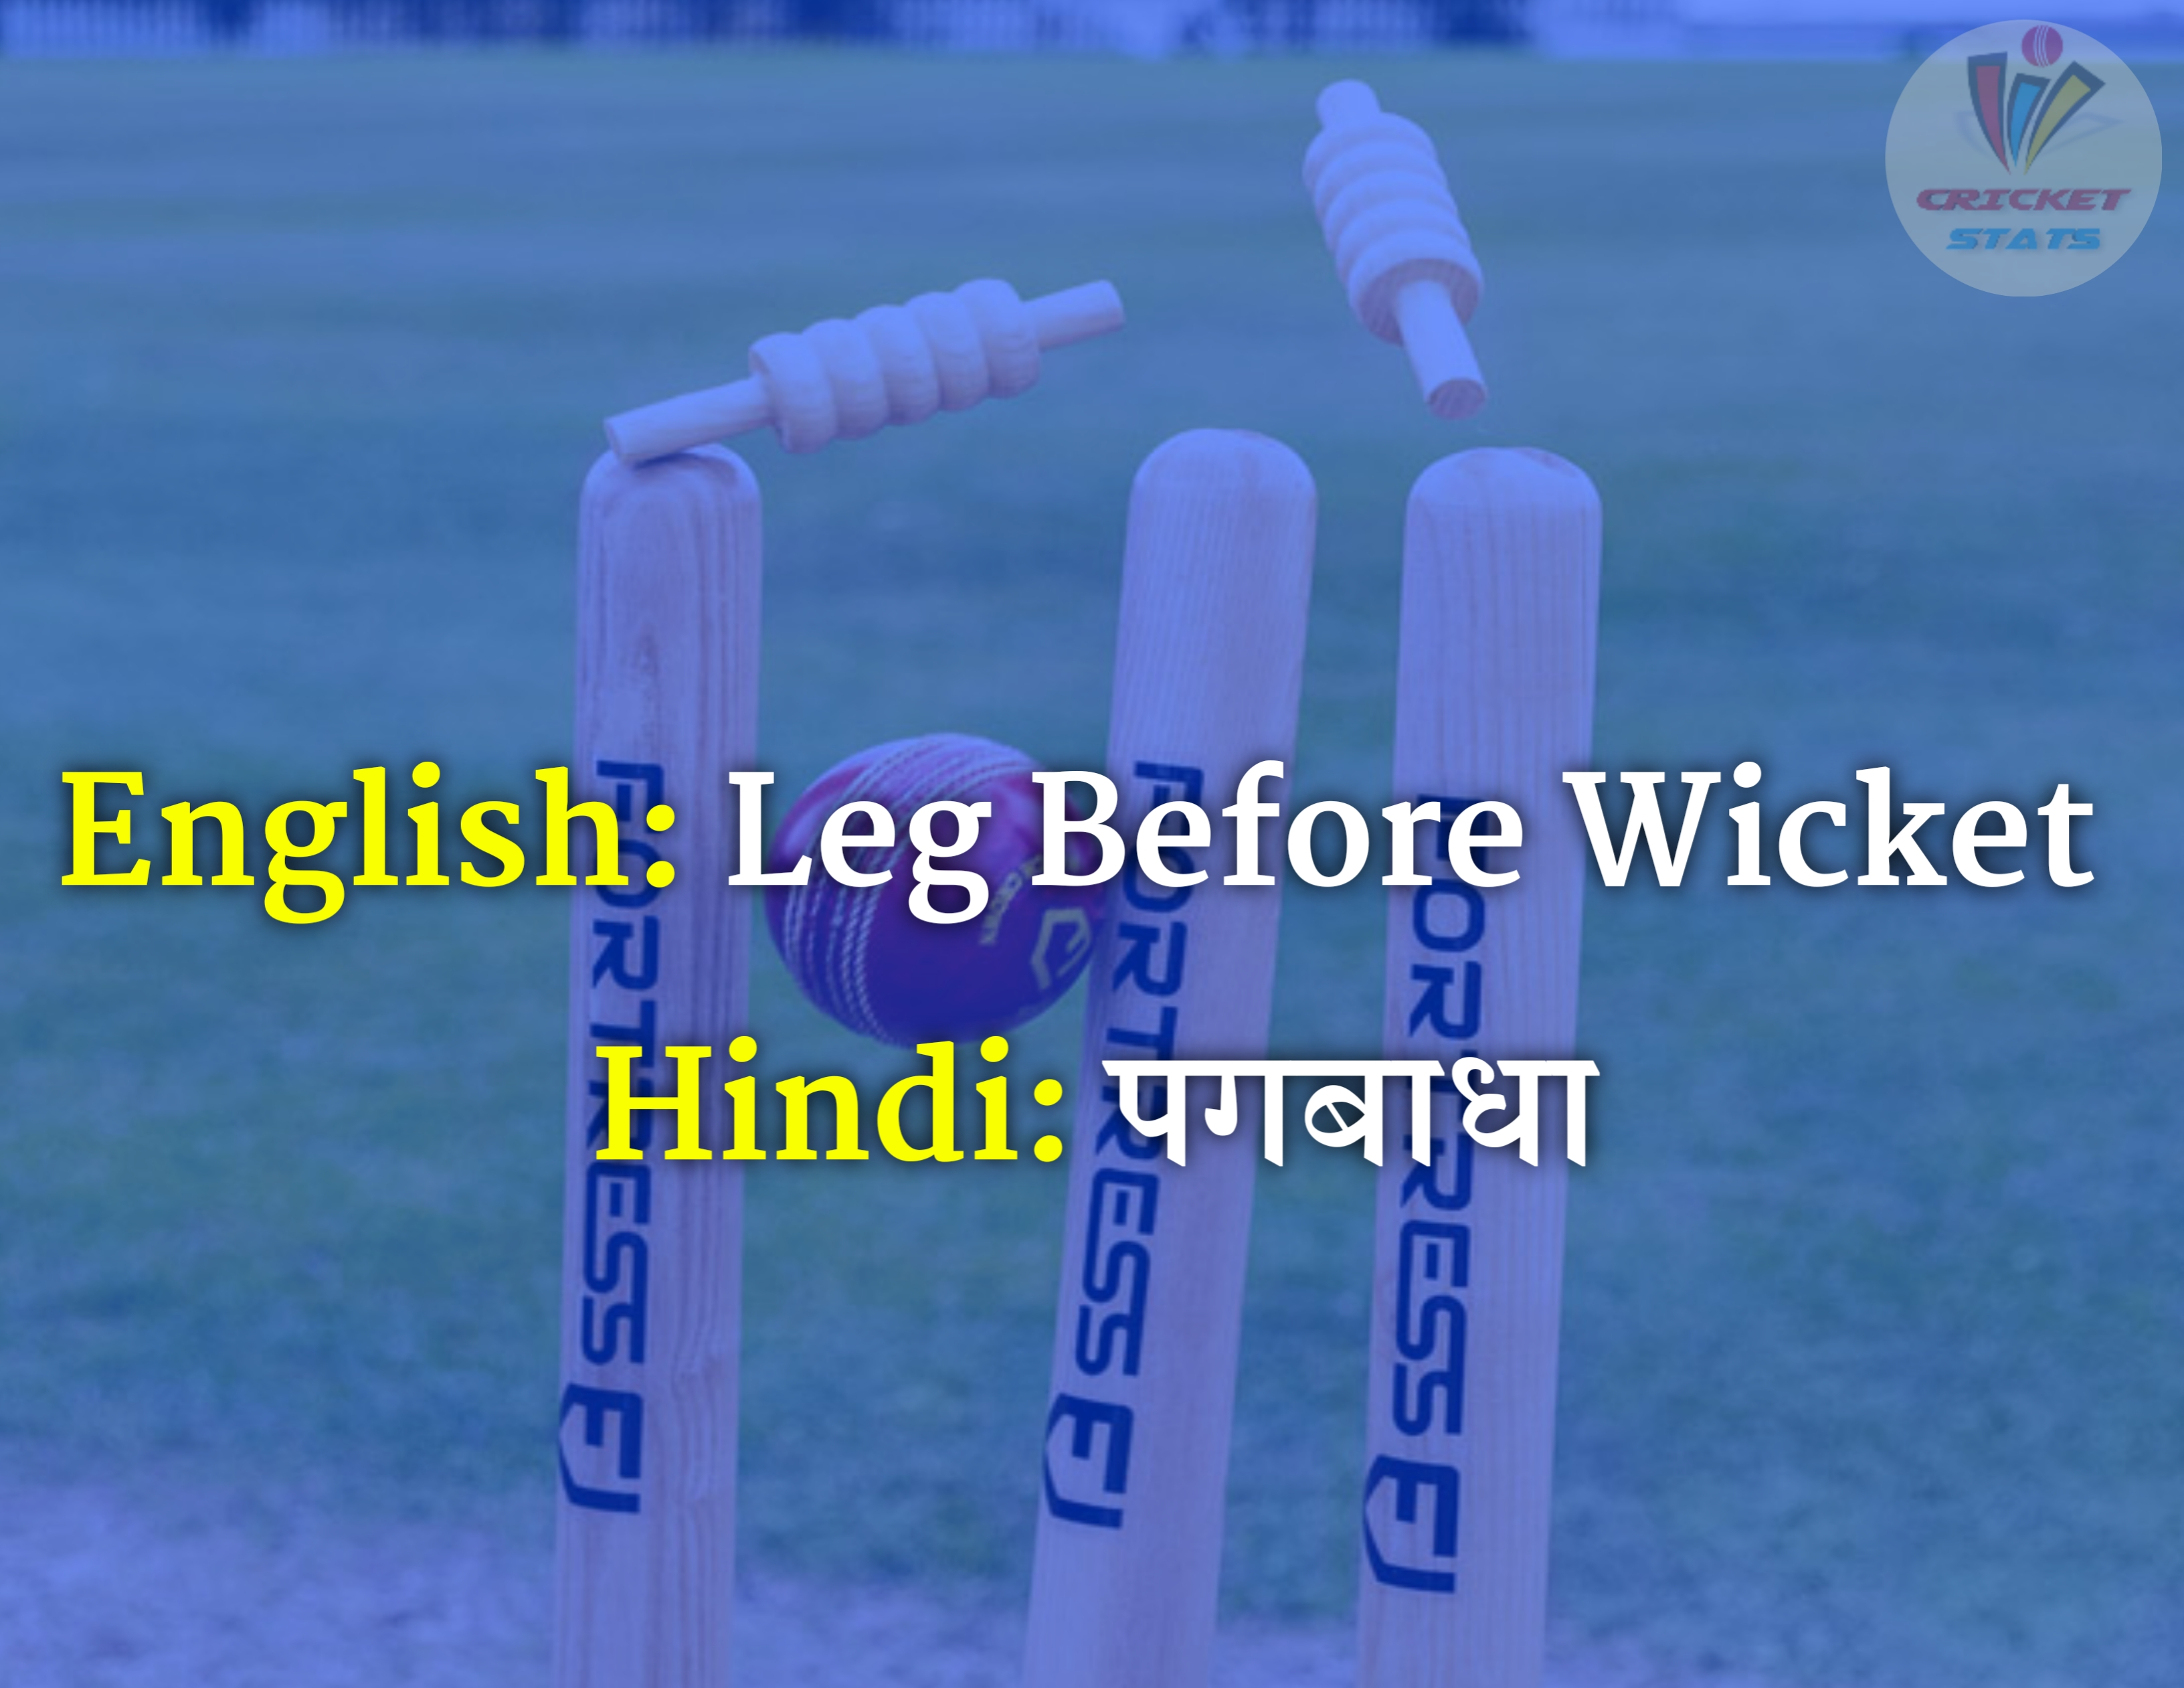 50 english worlds meaning that use in cricket